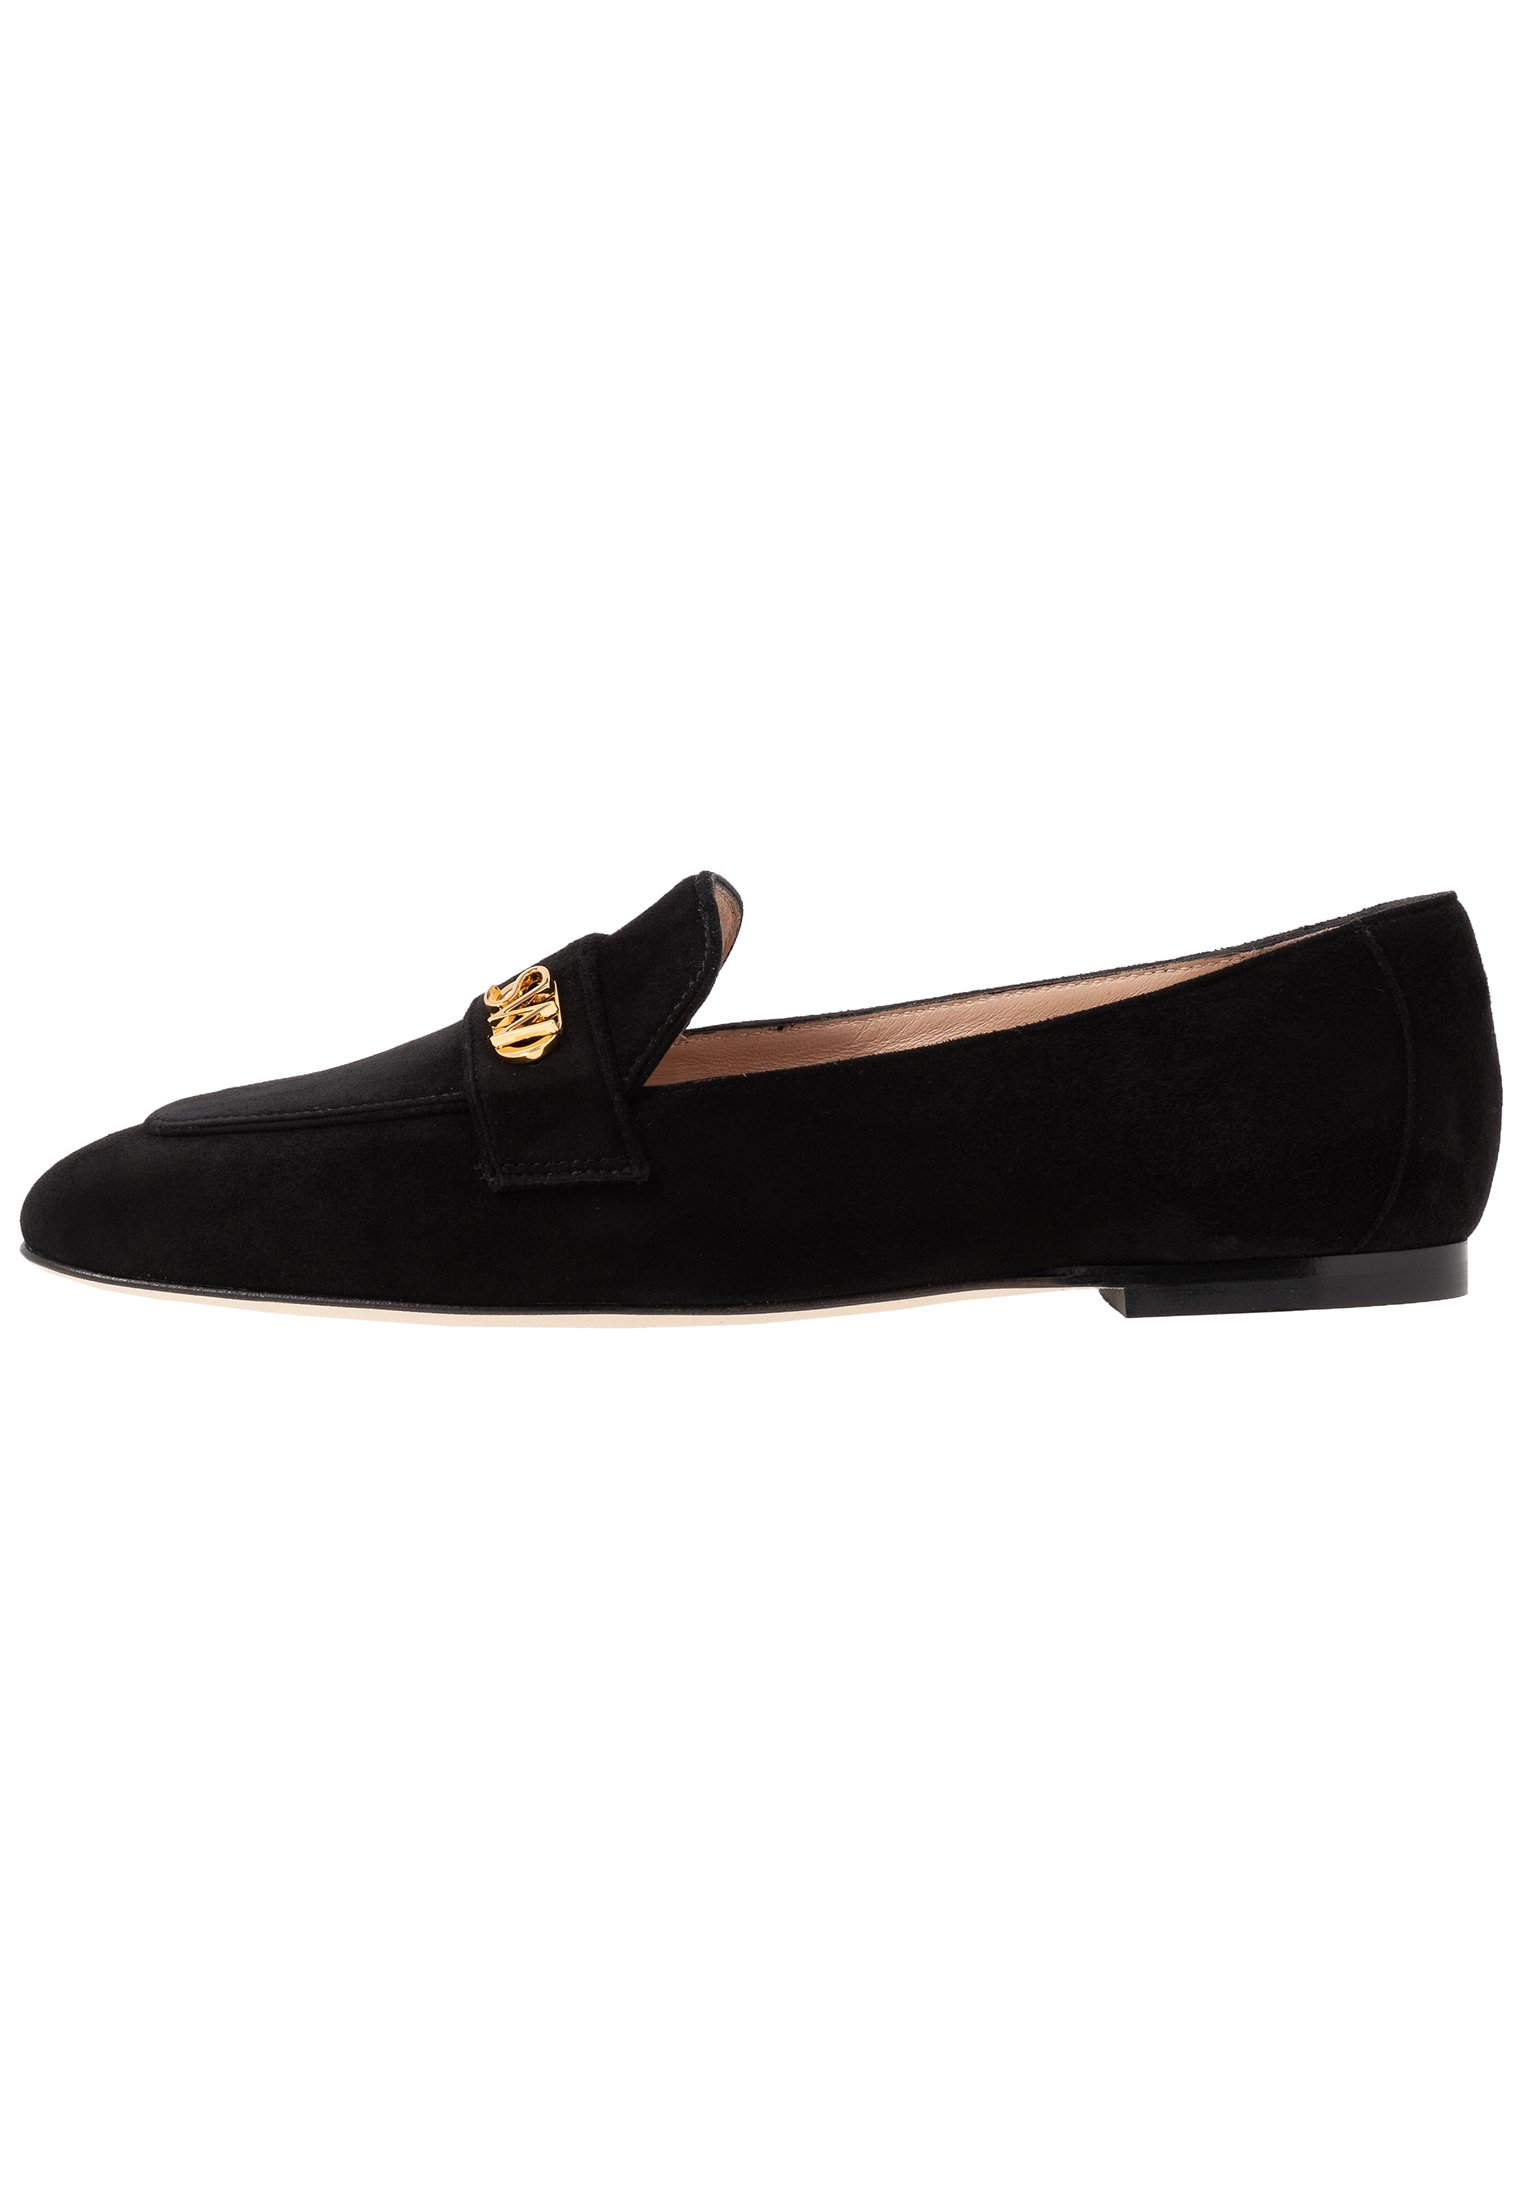 Stuart Weitzman Payson Logo - Slipper Black Friday